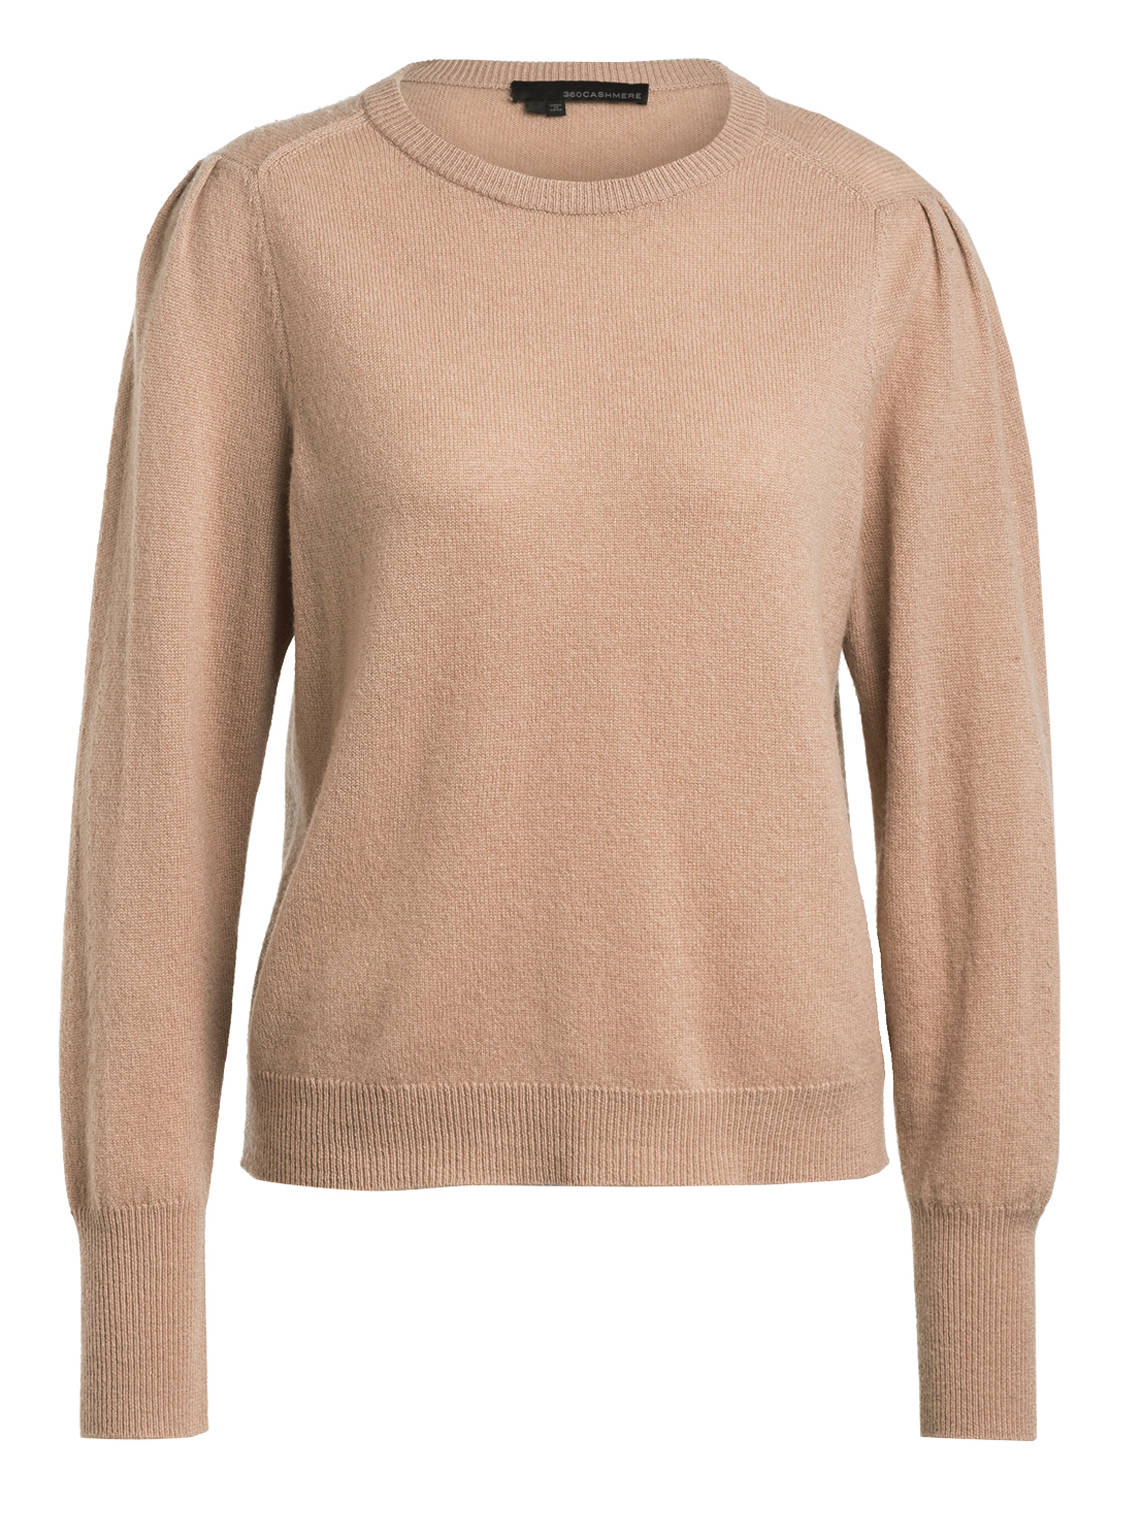 Image of 360cashmere Cashmere-Pullover Melany rosa